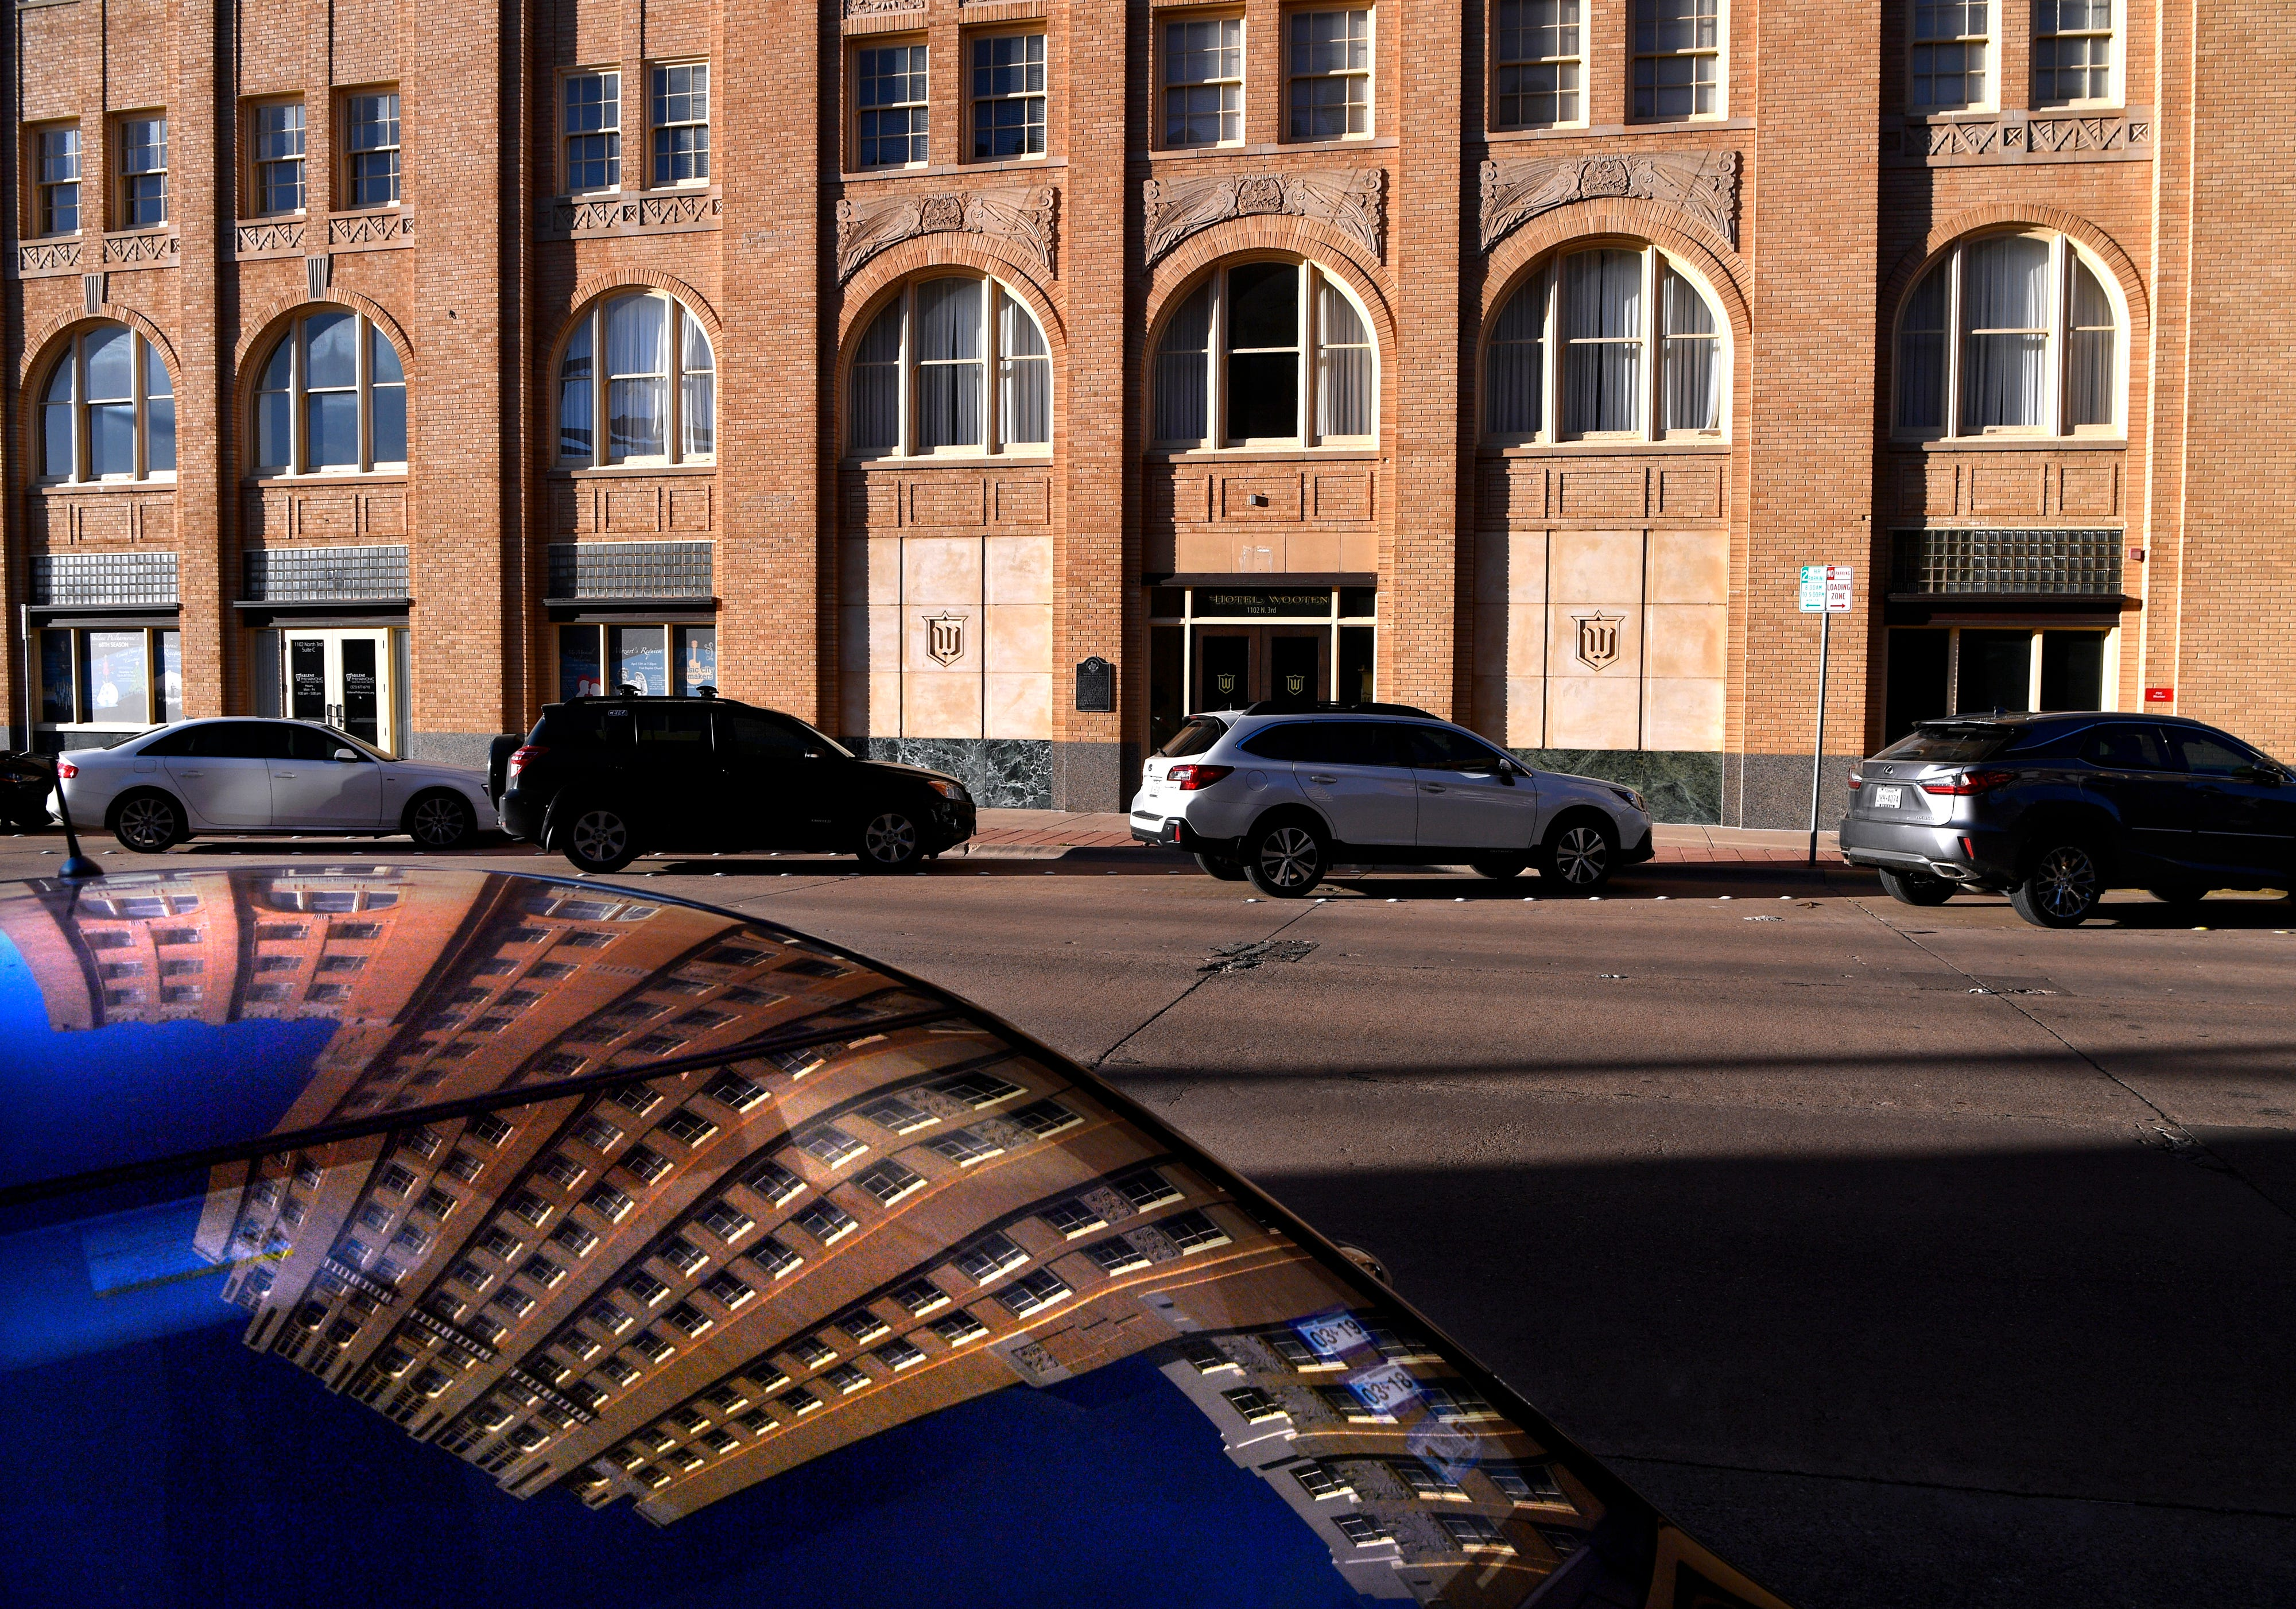 The Wooten is reflected in the windshield of a car parked in front of it, along with other vehicles filling North Third Street.